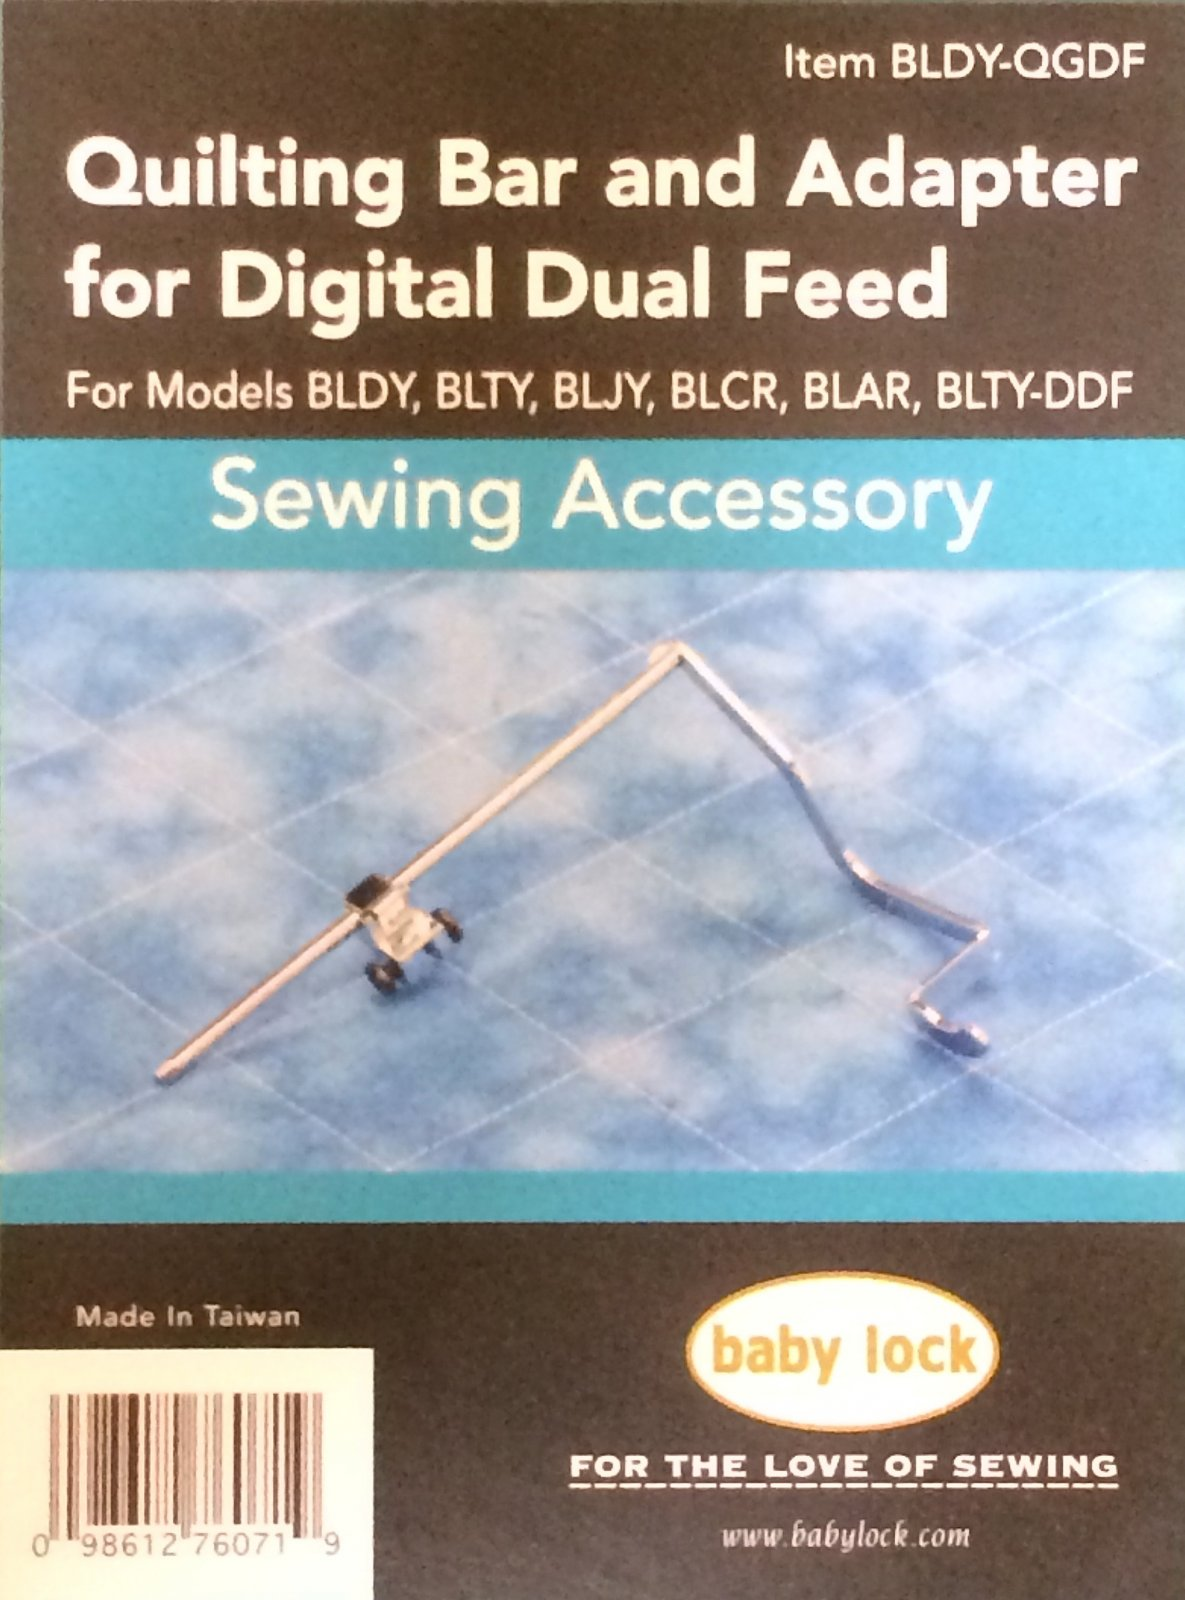 Quilting Bar and Adapter for Digital Dual Feed